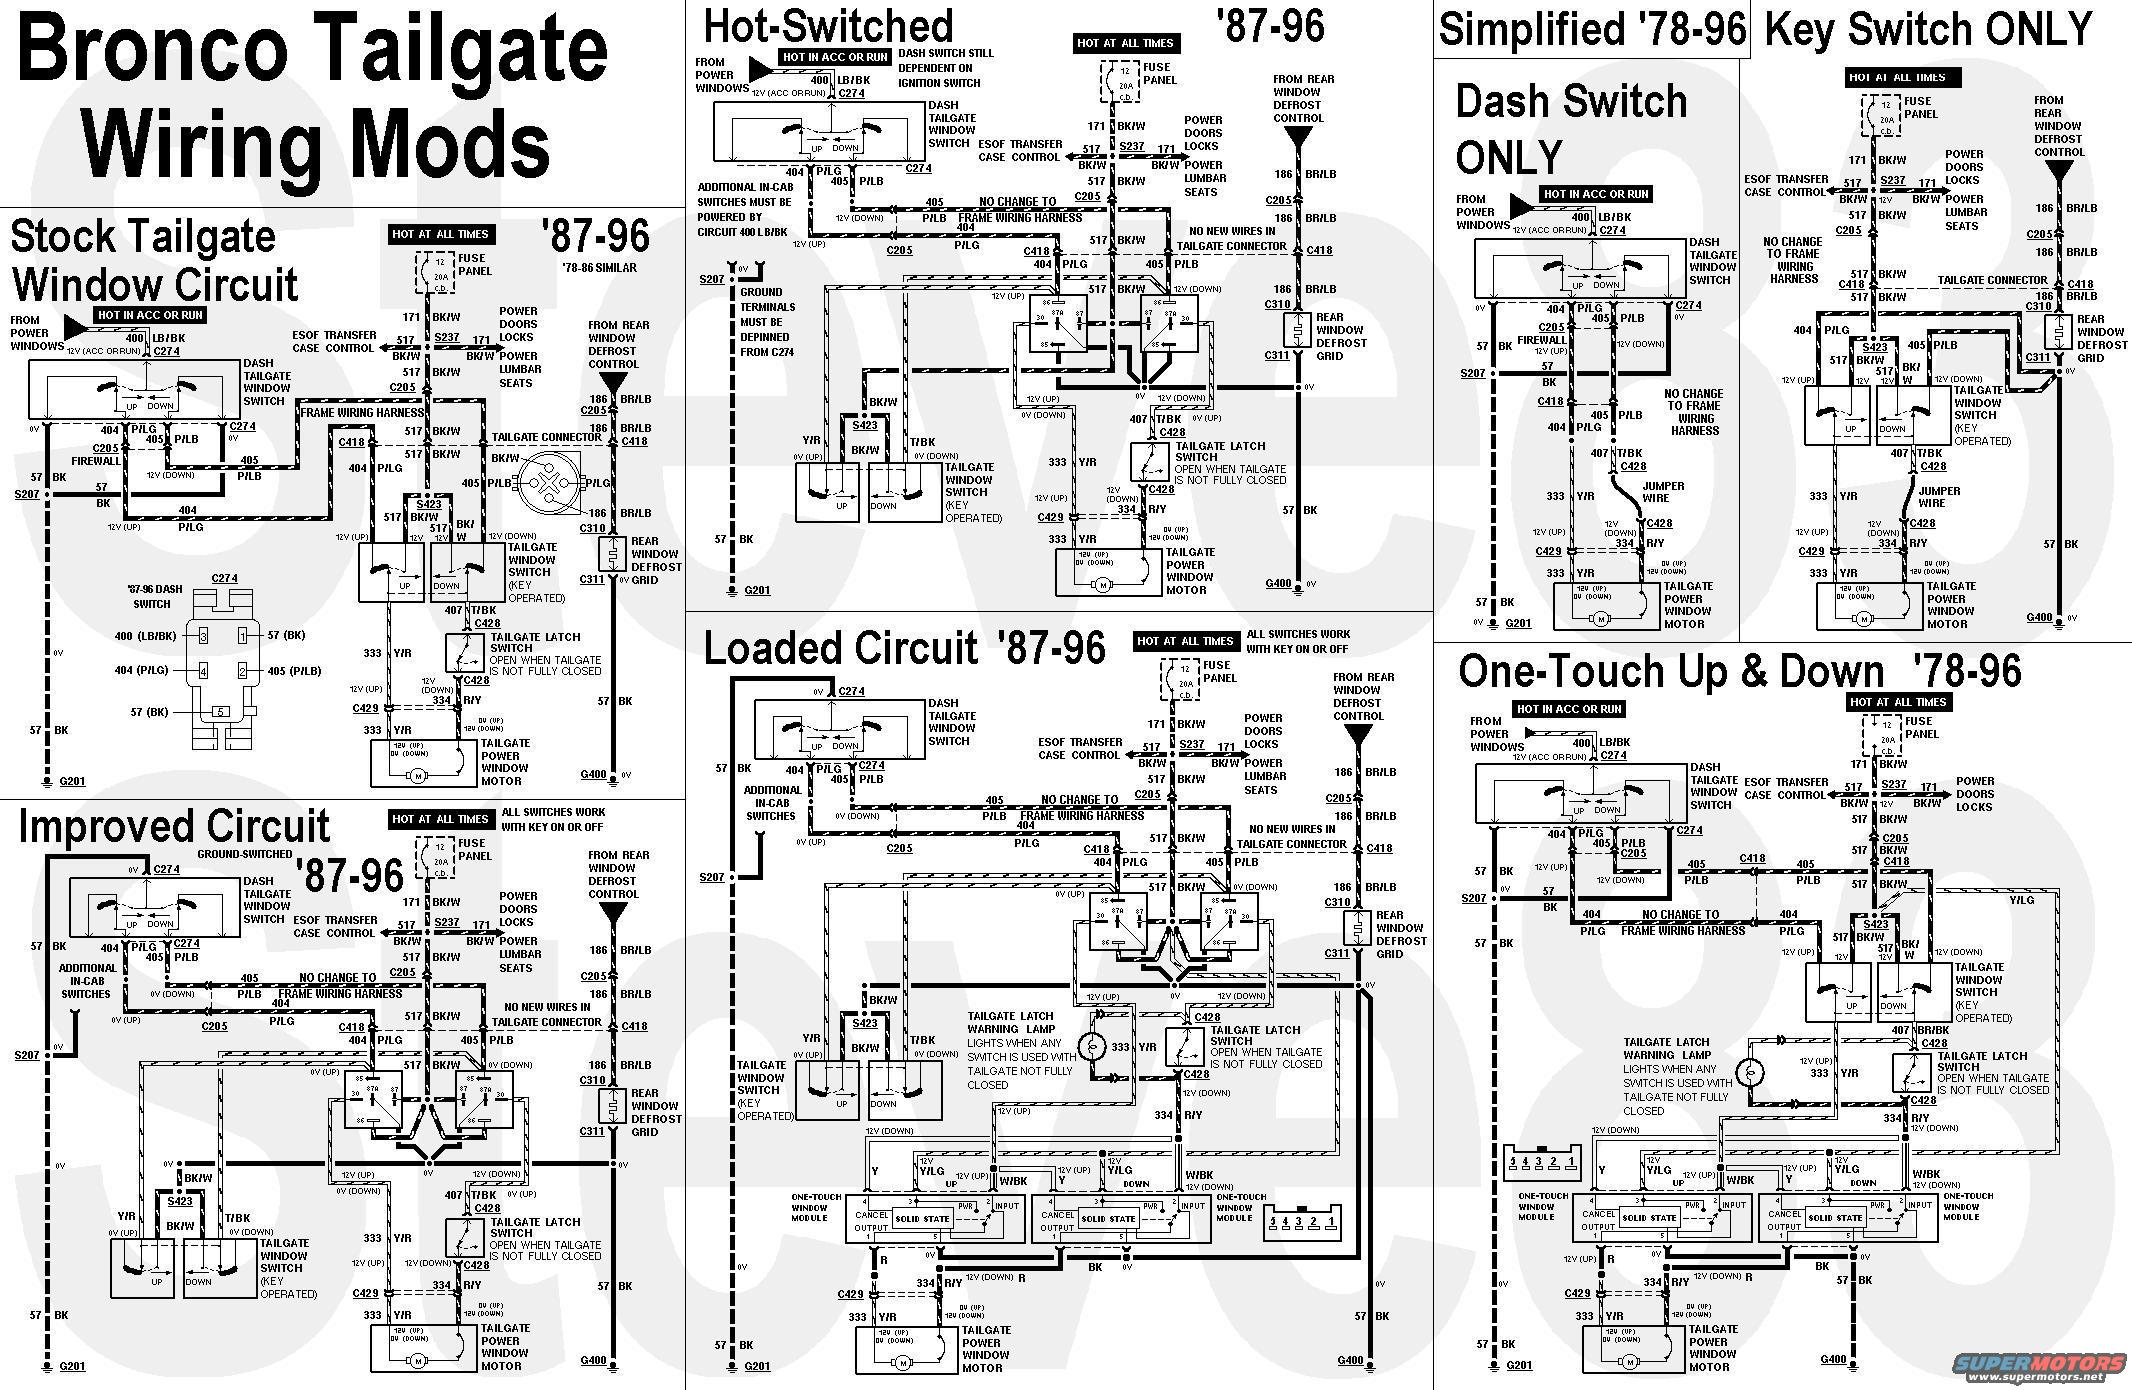 wrg 9867] 1989 ford bronco fuse diagram  1989 ford bronco fuse diagram #13